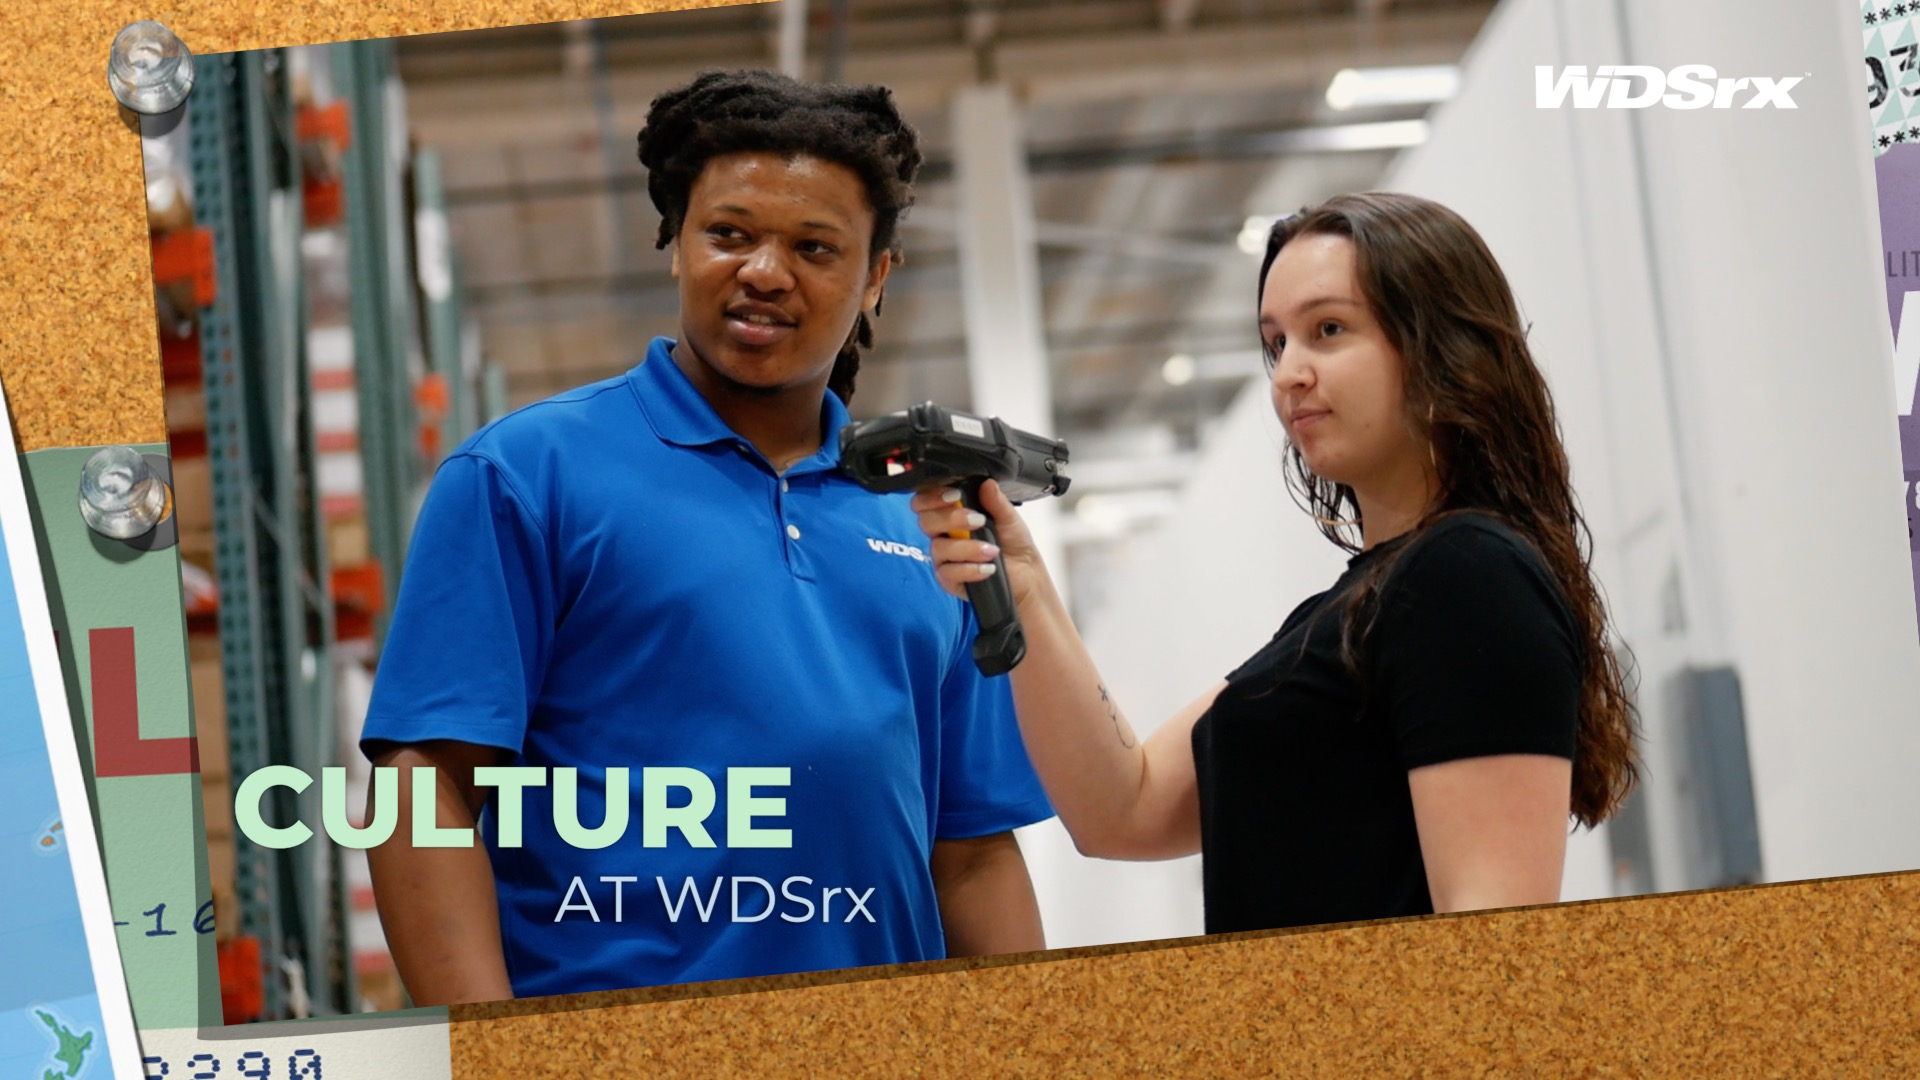 Culture is one of the WDSrx Video Series.